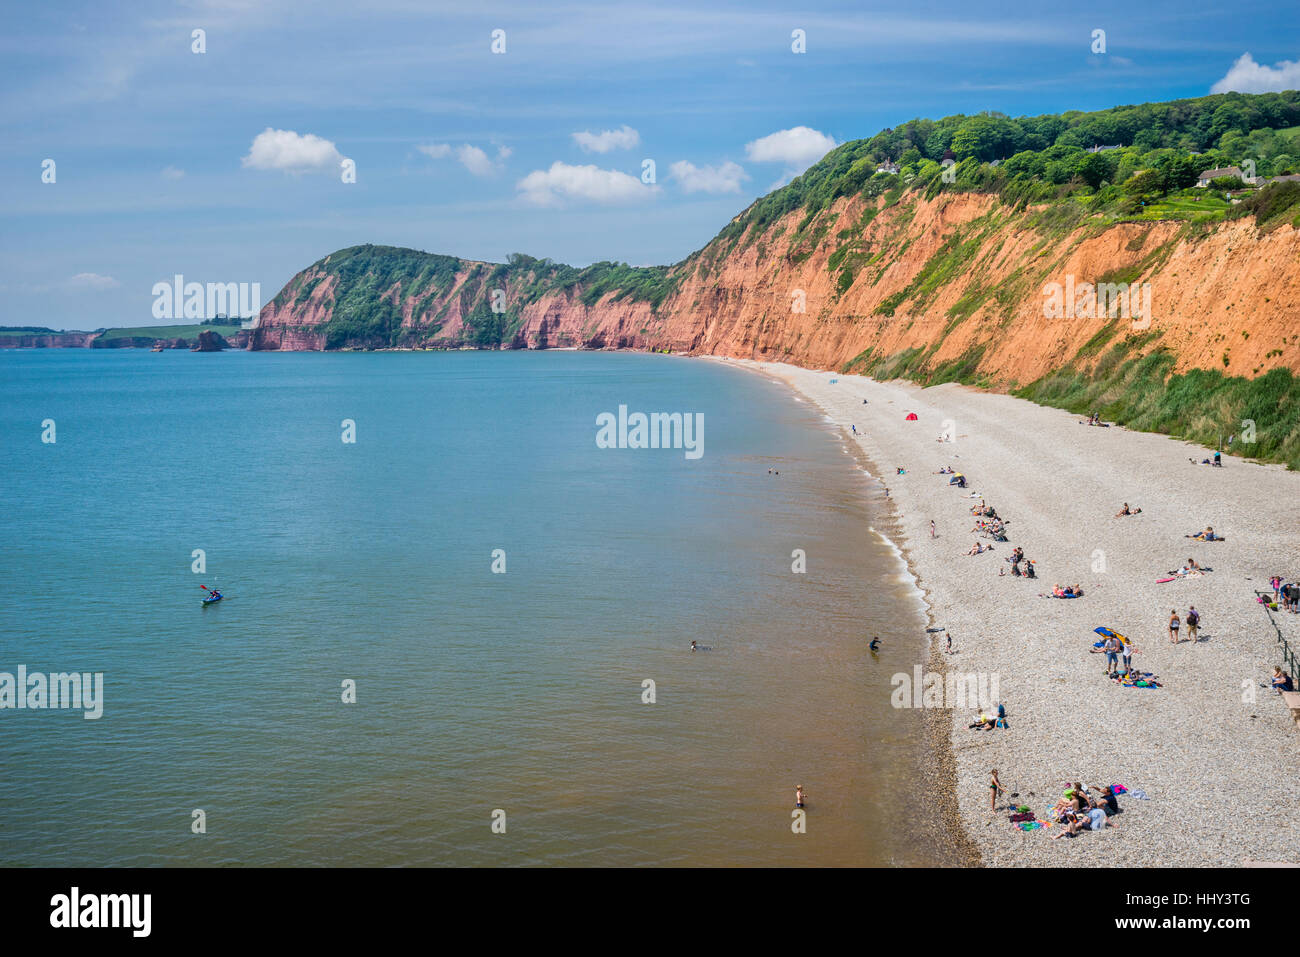 Great Britain, South West England, East Devon, Sidmouth, Jurassic Coast at the Peak Hill cliff face west of Sidmouth - Stock Image